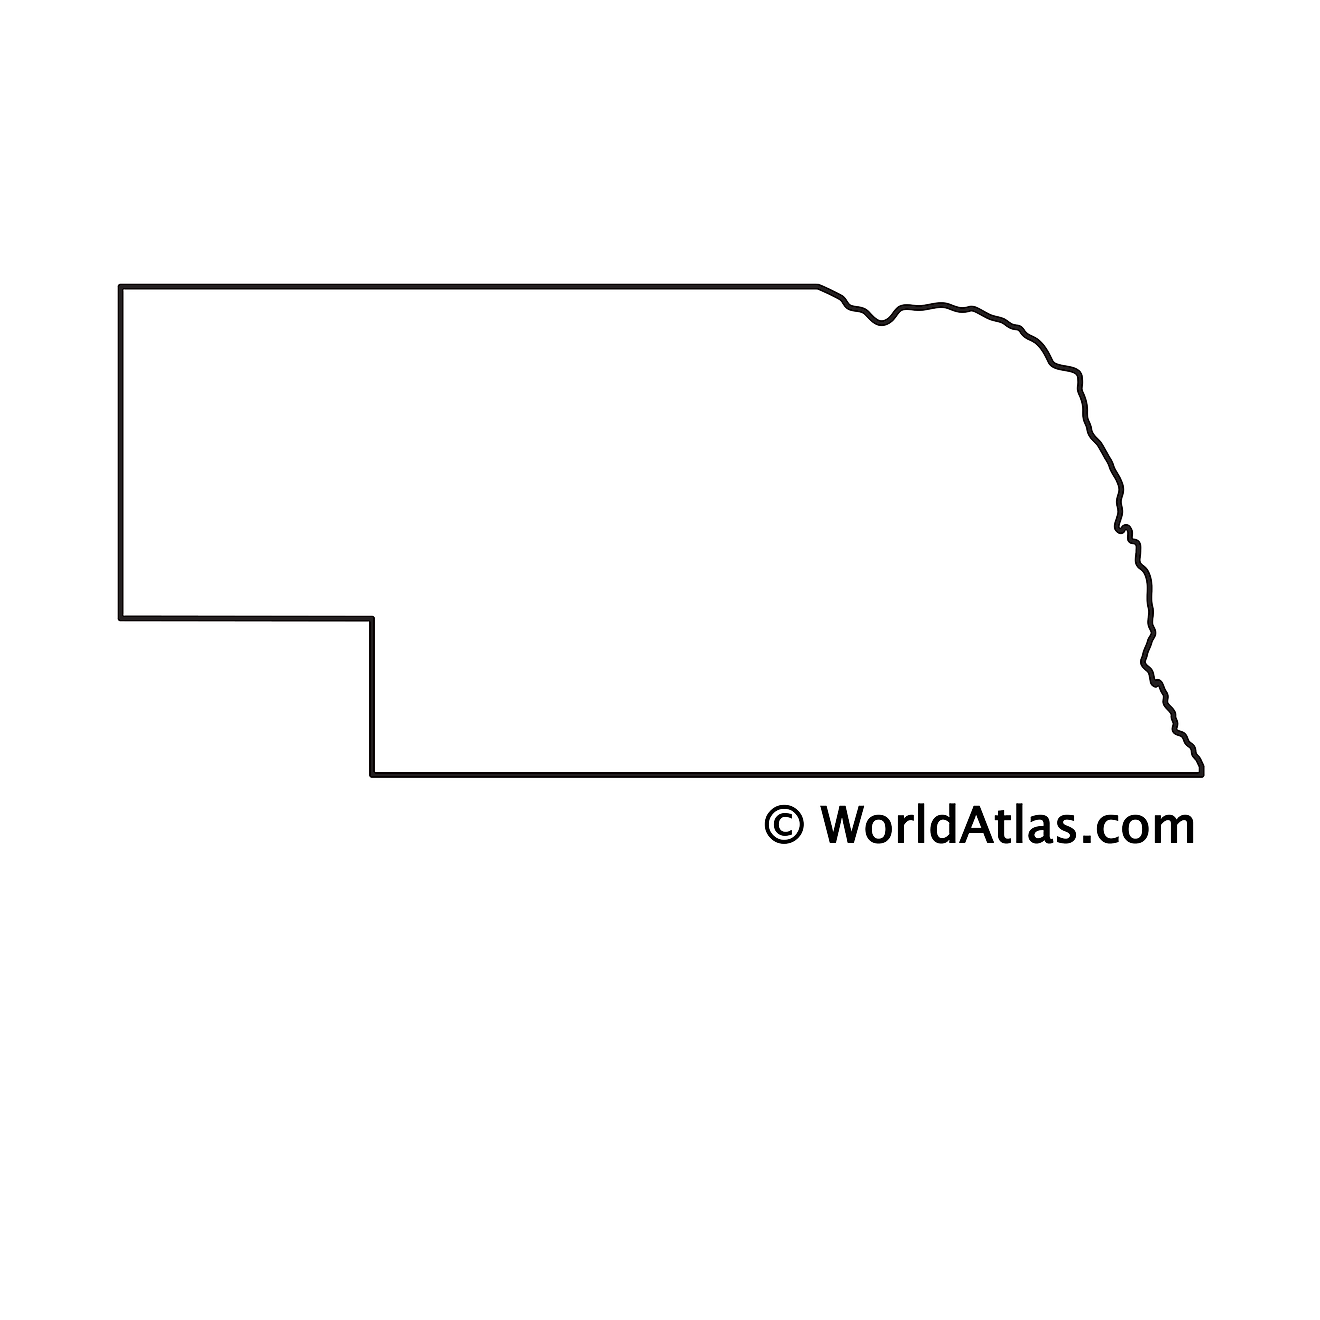 Blank Outline Map of Nebraska